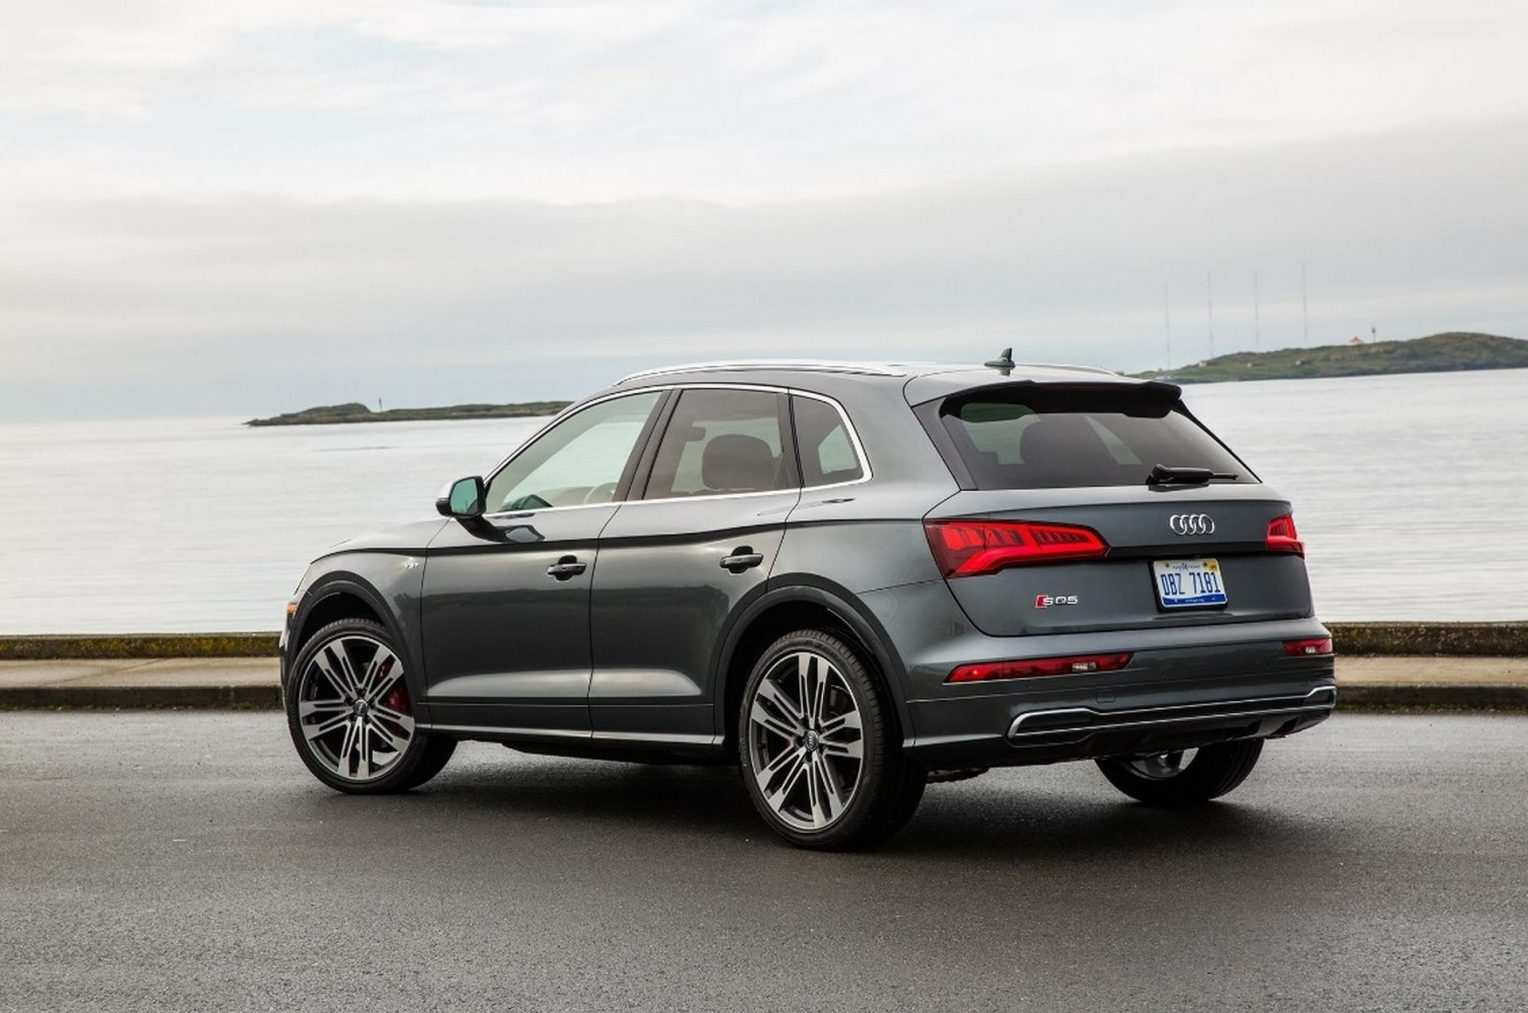 94 Gallery of Audi Sq5 2019 Order Guide New Release Photos for Audi Sq5 2019 Order Guide New Release